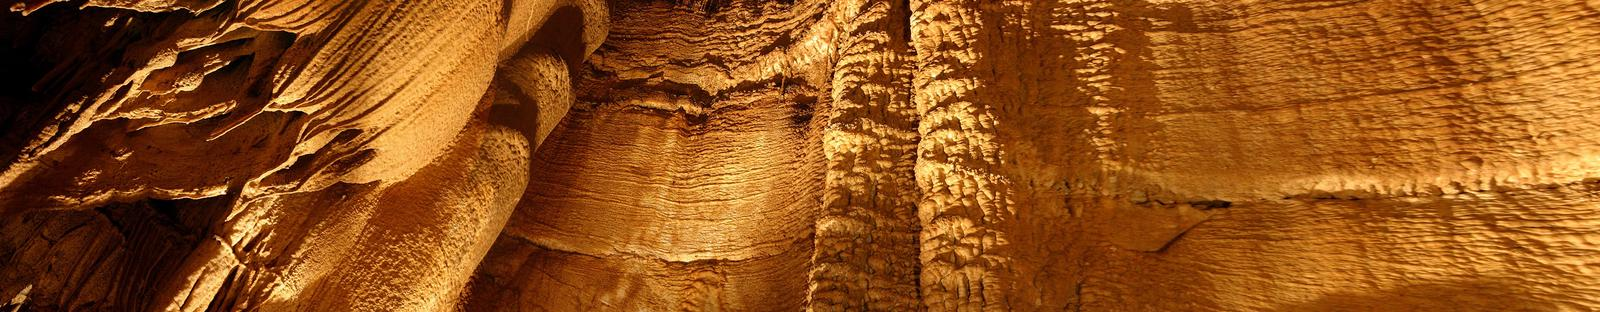 Domes and Dripstones tour has vast areas of flowstone that resembles draperiesDomes and Dripstones tour